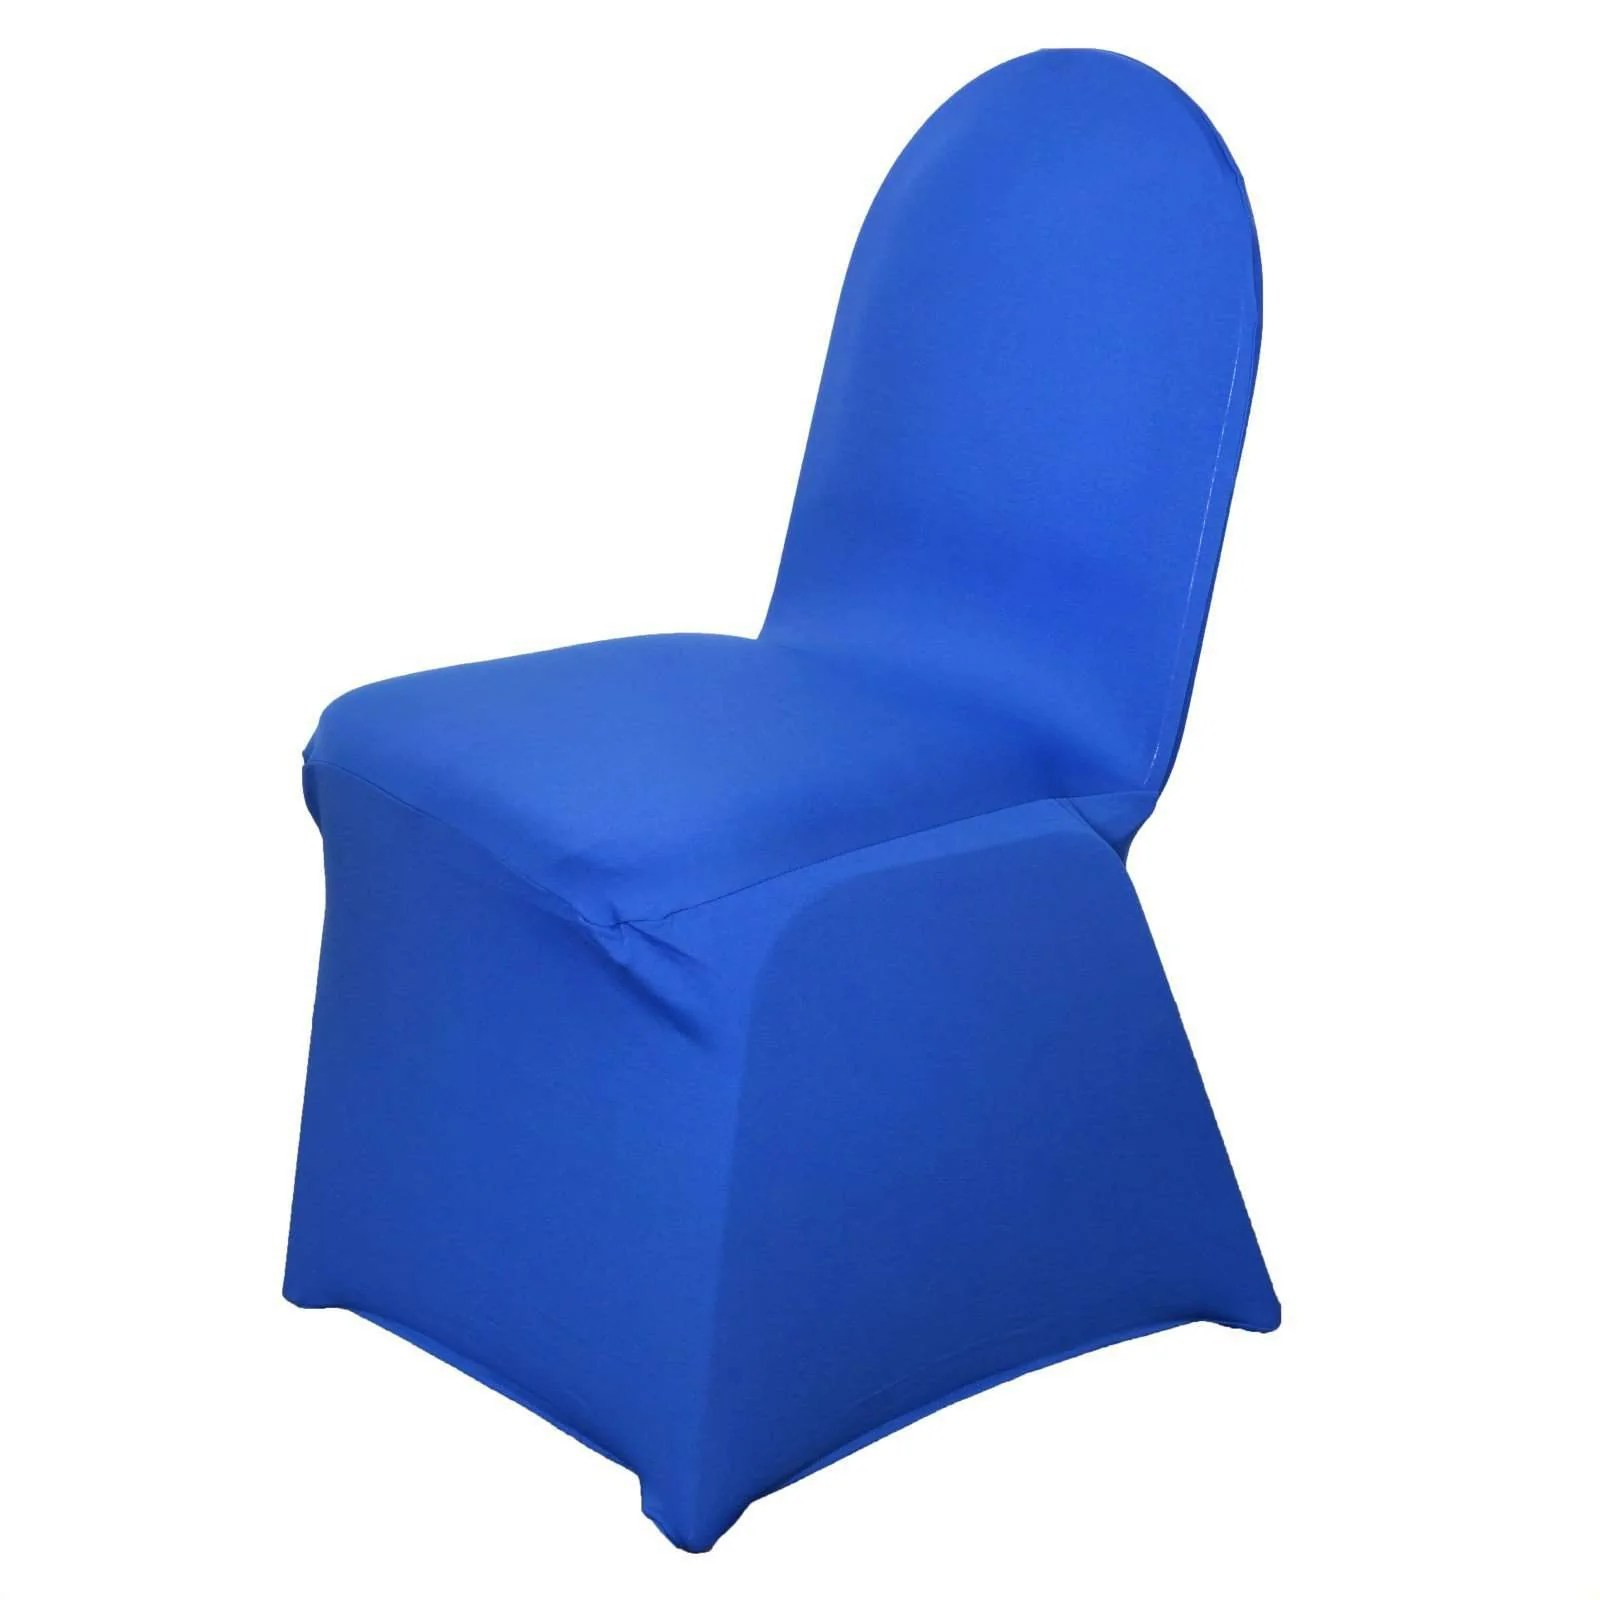 cover chairs wholesale swivel chair amart royal blue spandex stretch banquet wedding covers